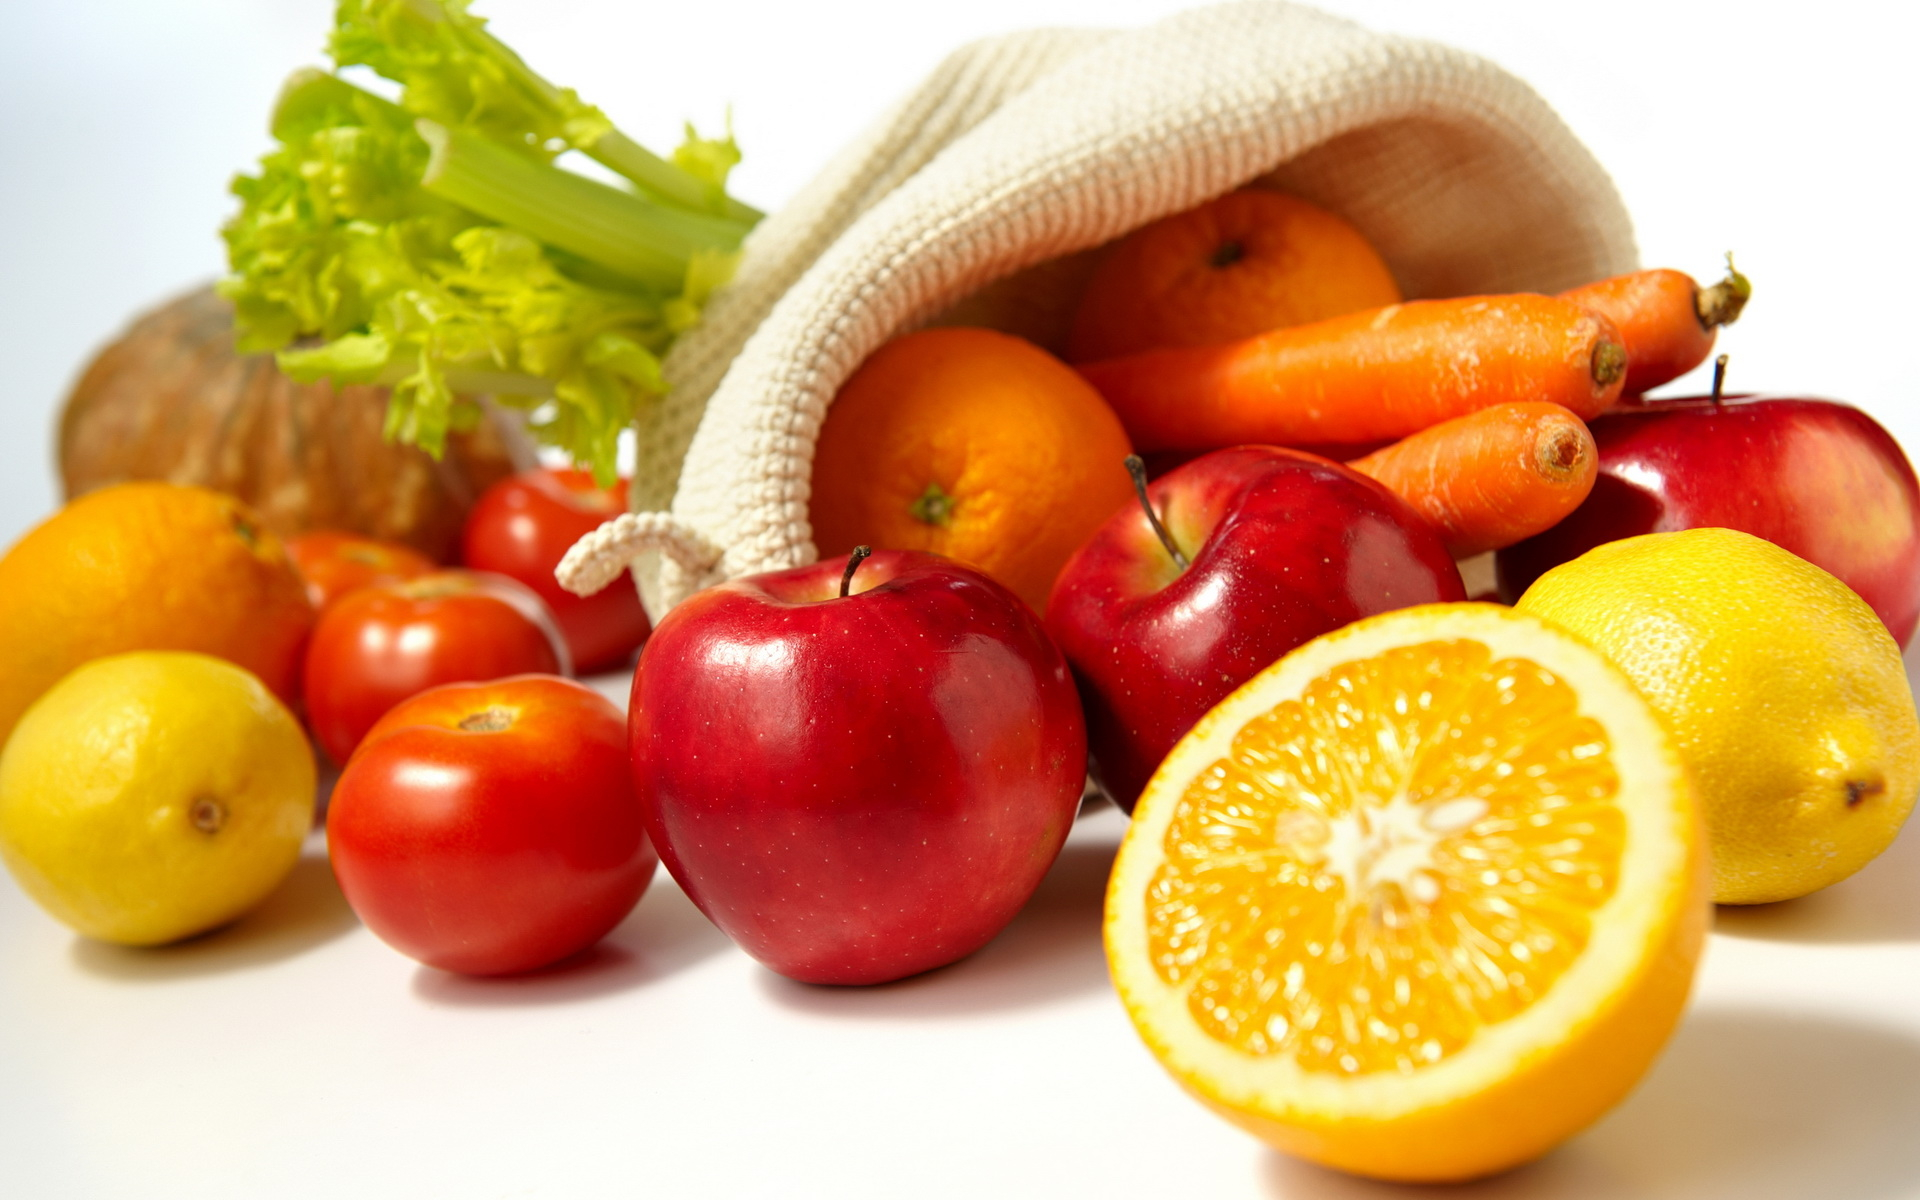 Fruits and vegetables wallpapers and images   wallpapers pictures 1920x1200